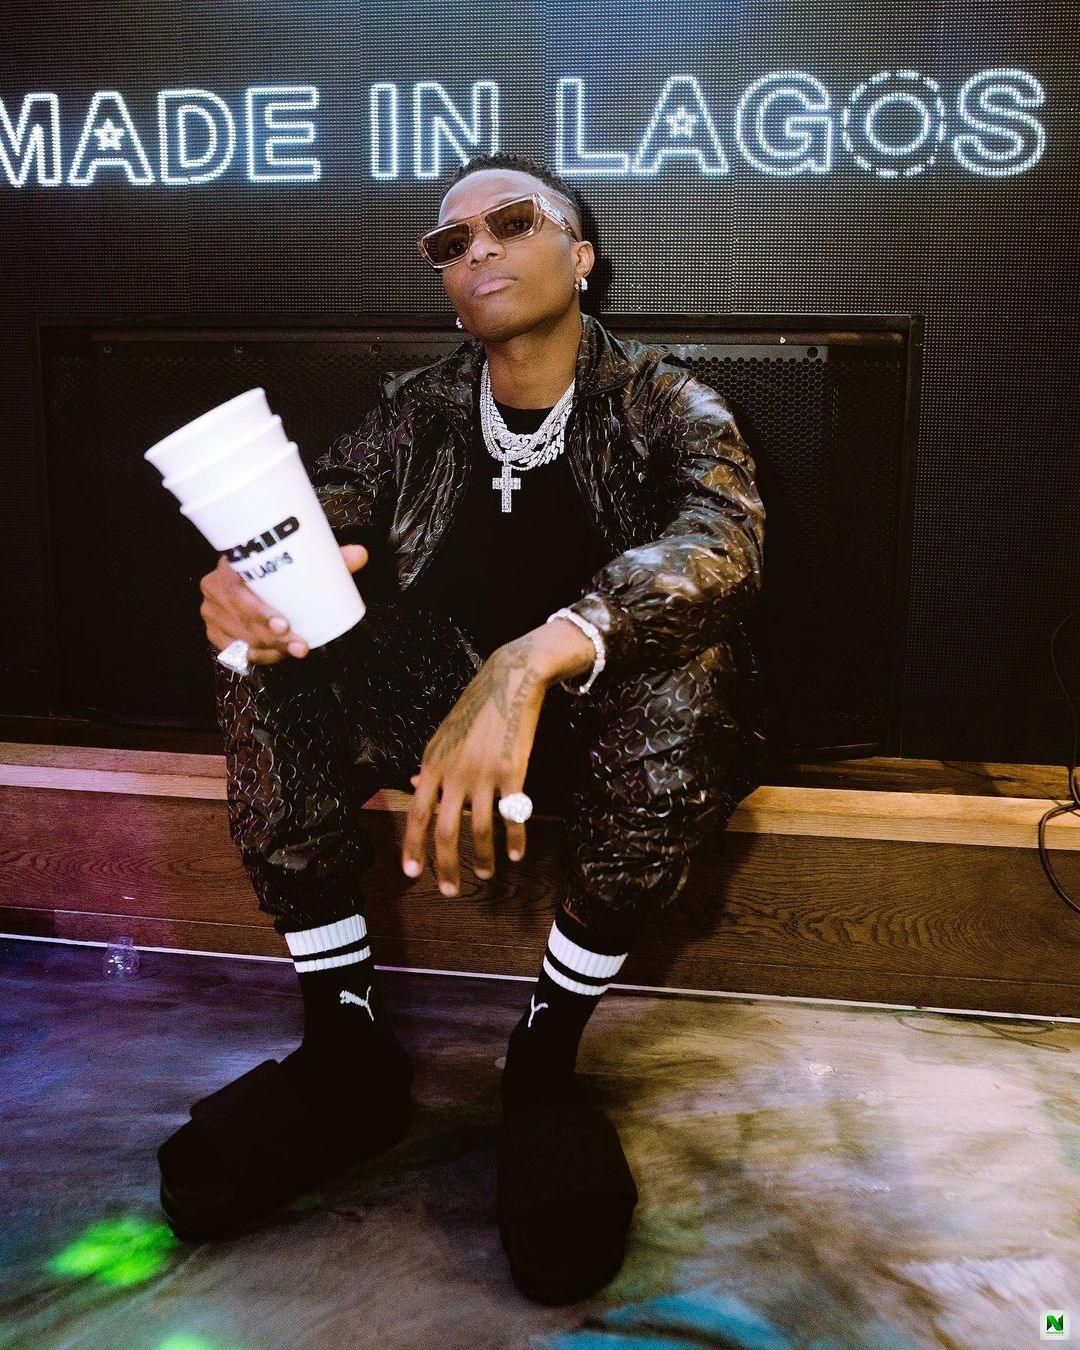 Wizkid's 'Made In Lagos' Becomes Nigeria's Highest Charting Album On US Itunes